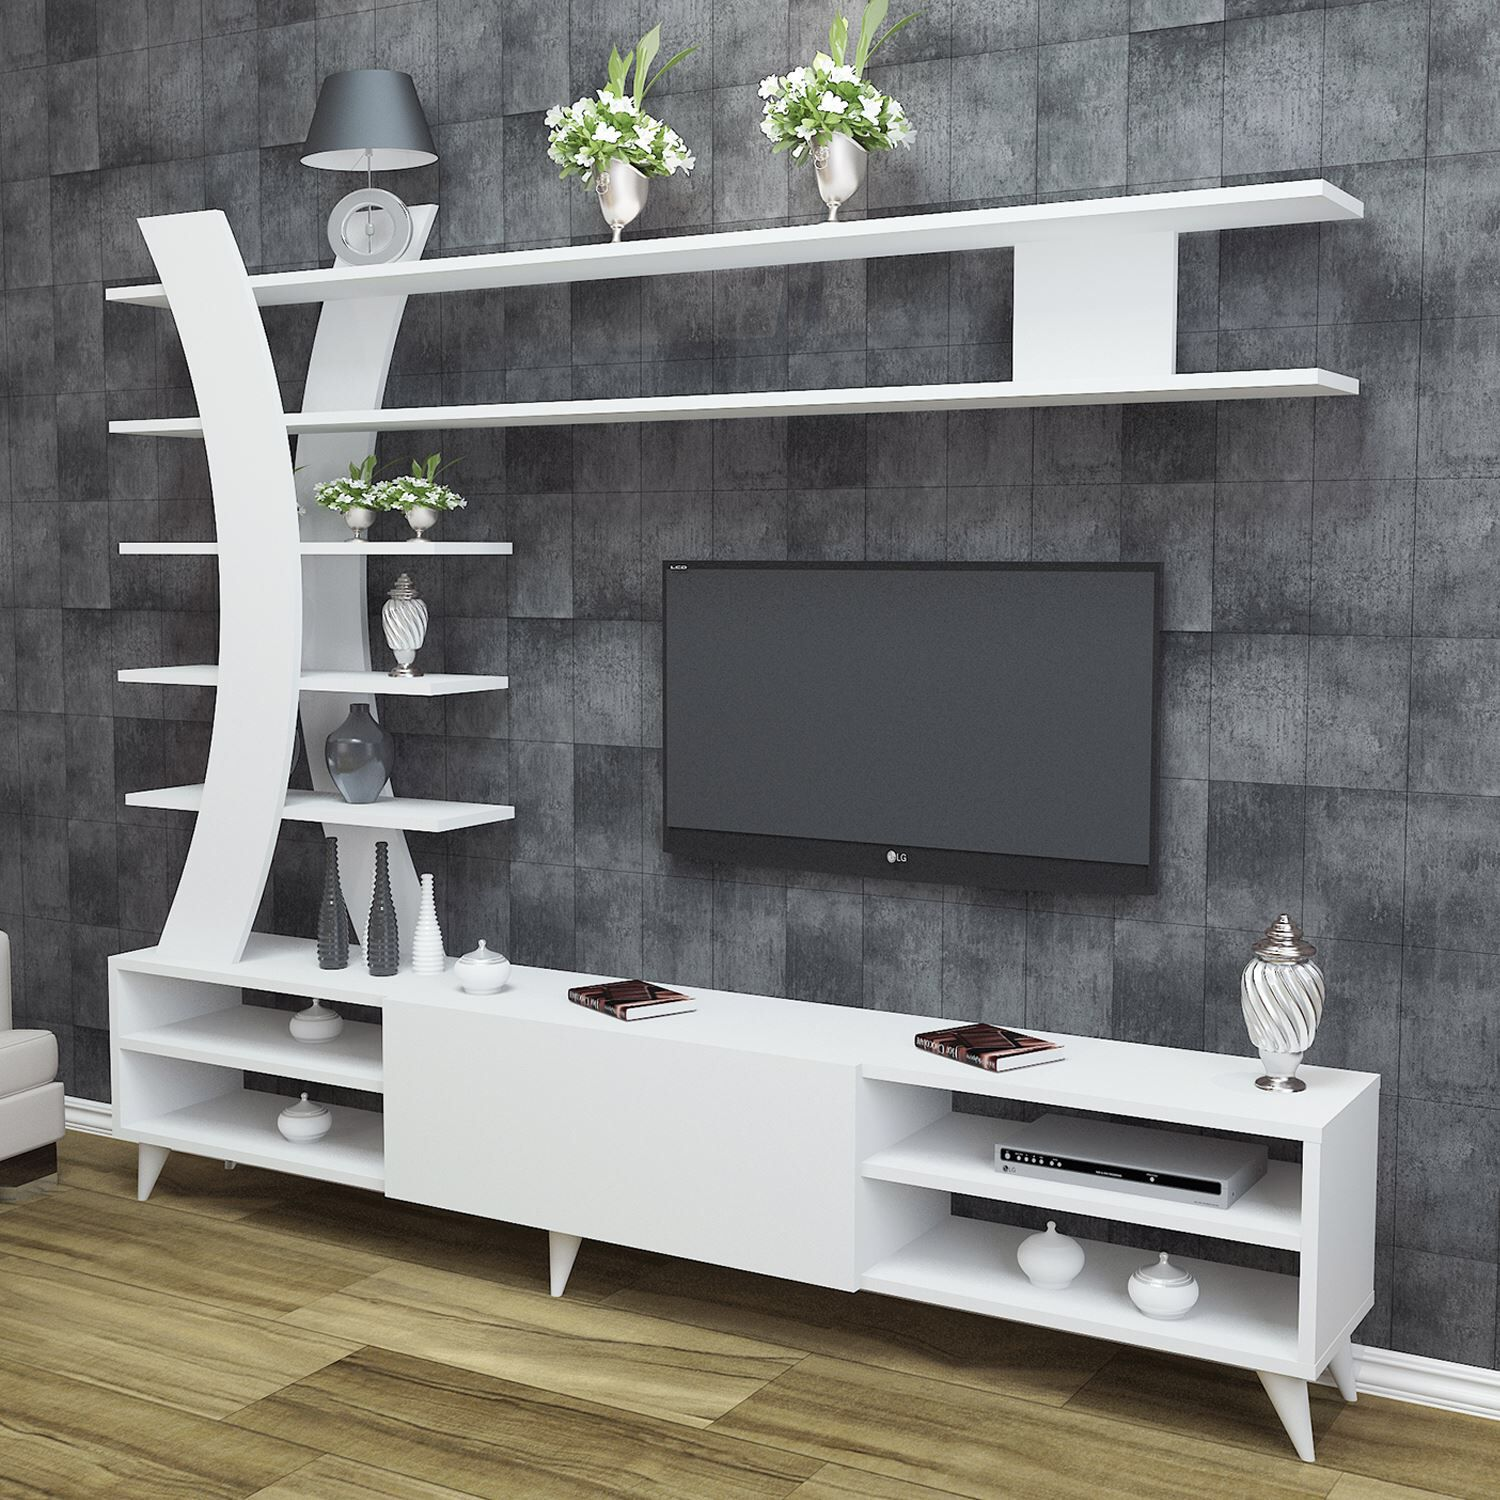 Tv Schrank Odin Pin By Saravanan On Tv Unit In 2019 Tv Unit Decor Tv Wall